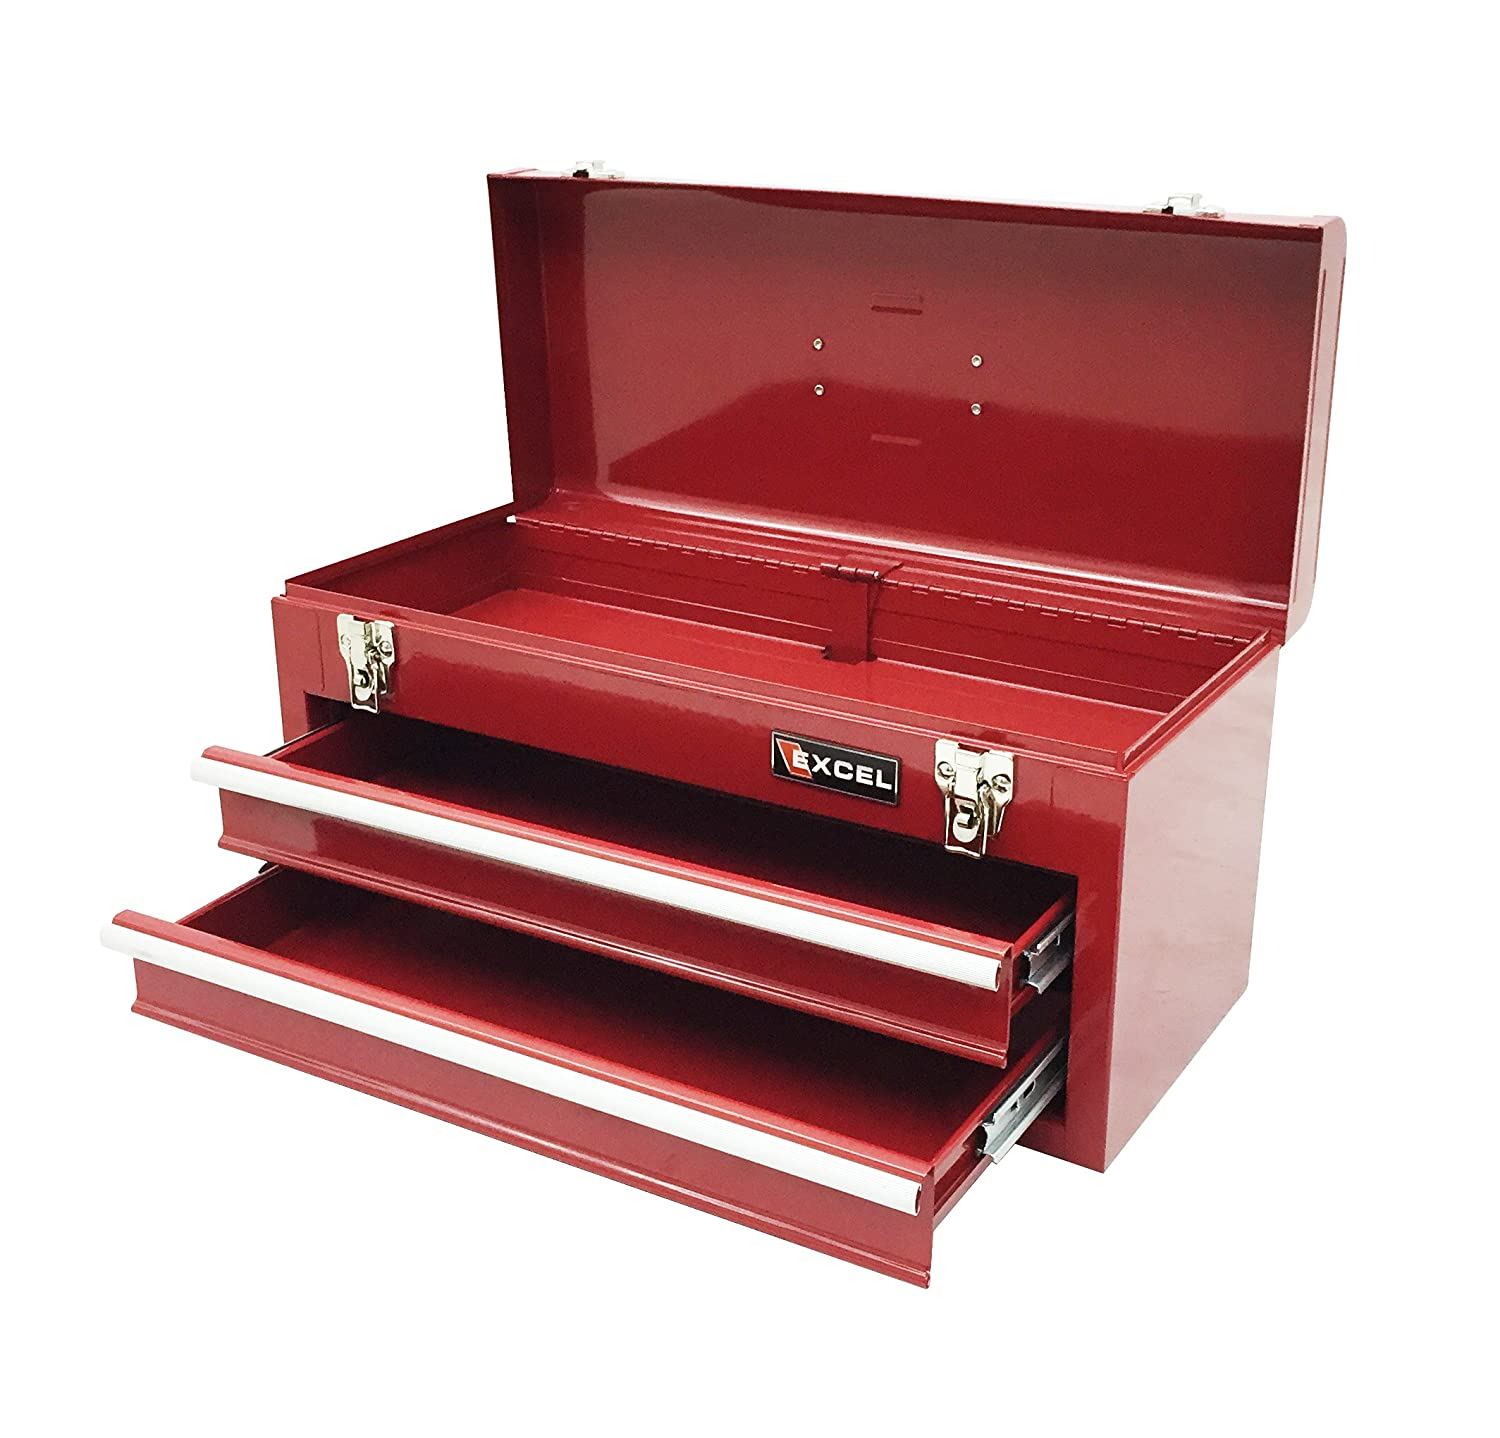 8) Excel Portable Steel Tool Box